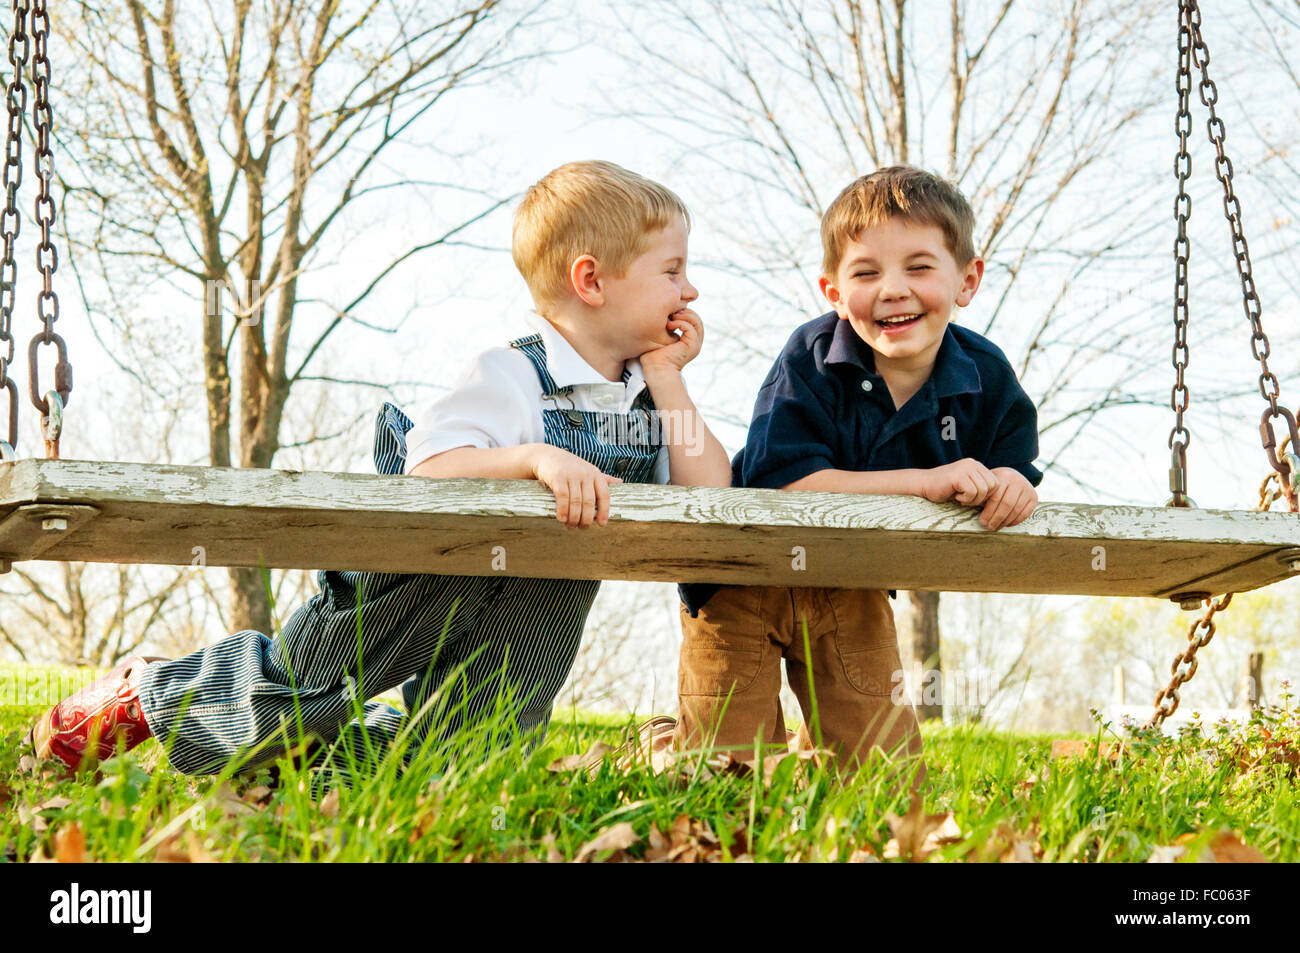 Two boys leaning on swing laughing together - Stock Image